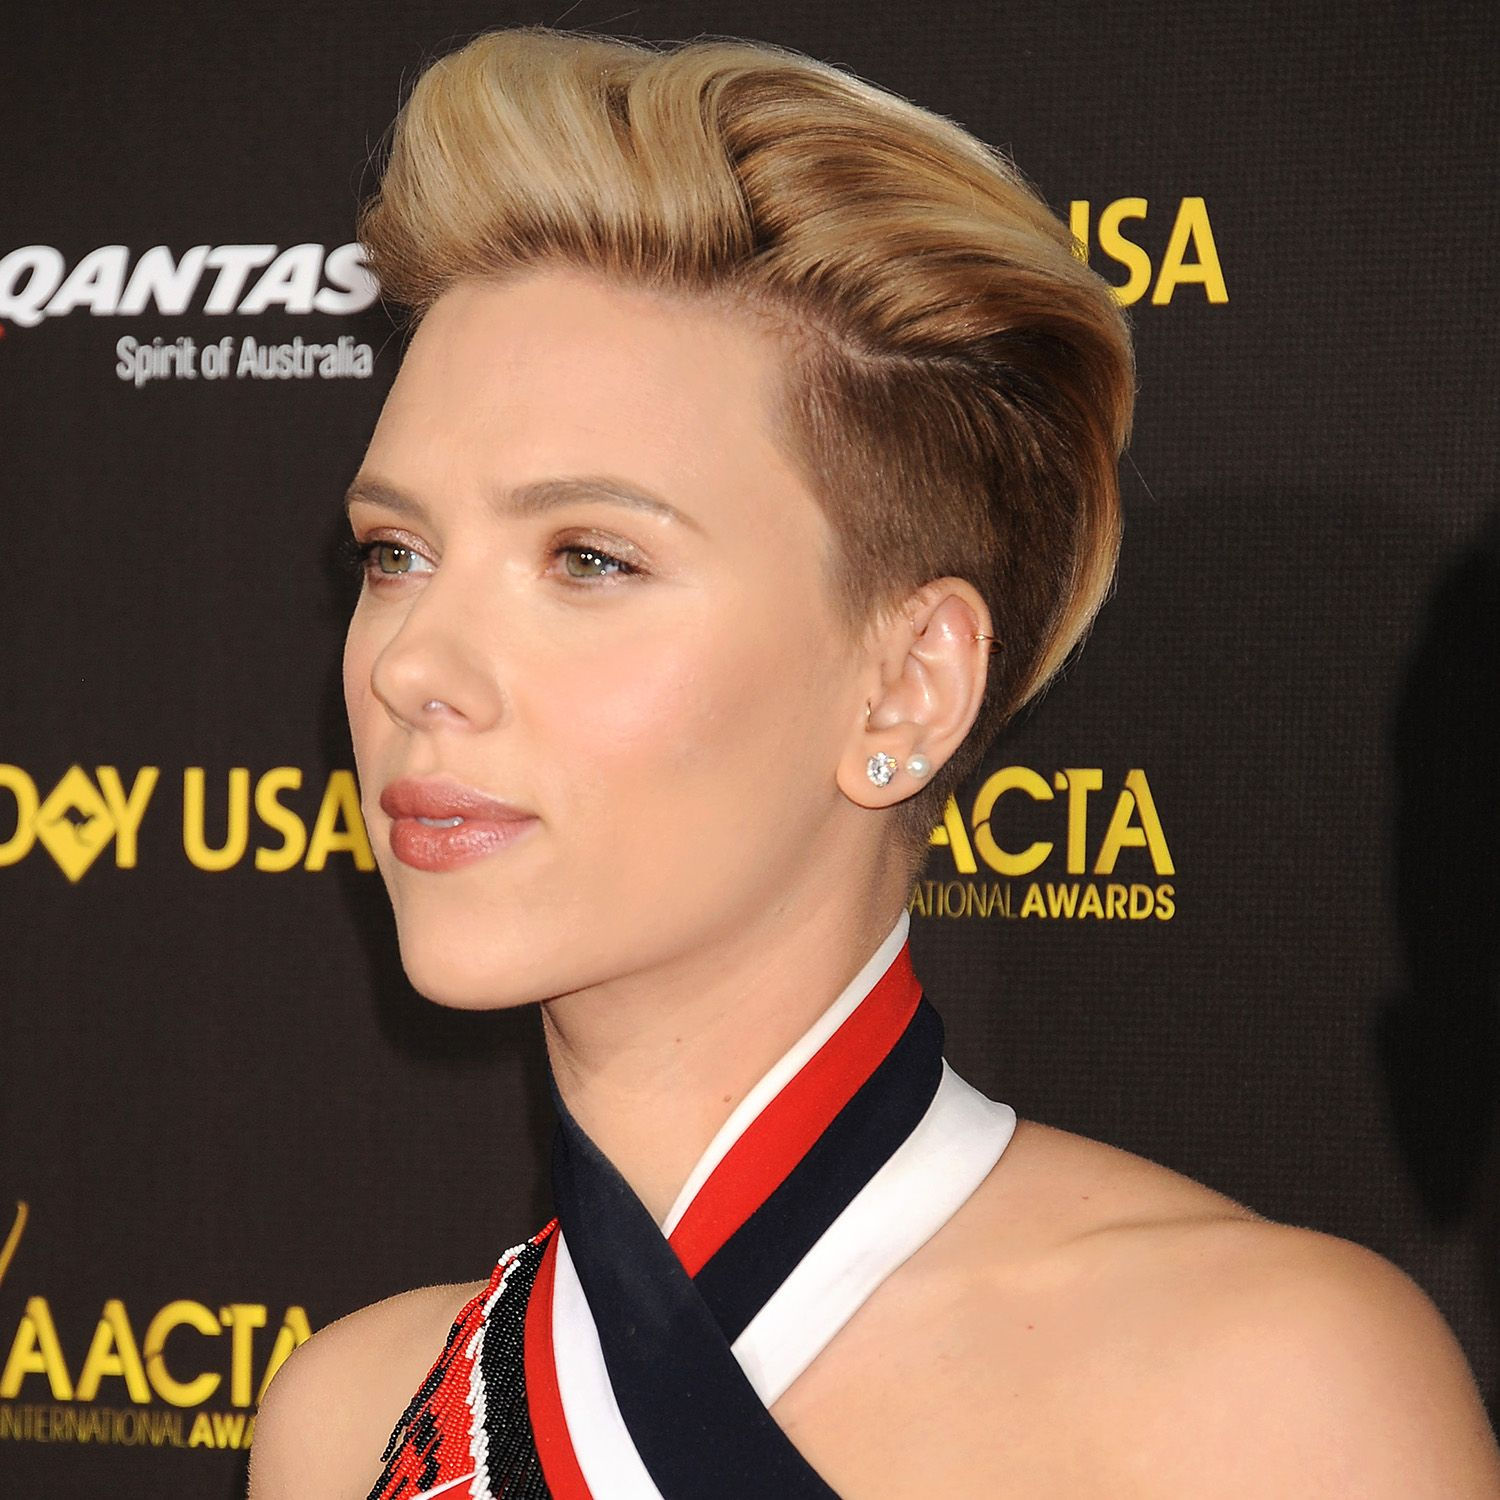 LOS ANGELES, CA - JANUARY 31: Actress Scarlett Johansson attends the 2015 G'Day USA Gala featuring the AACTA International Awards presented by Qantas at Hollywood Palladium on January 31, 2015 in Los Angeles, California.(Photo by Jeffrey Mayer/WireImage)